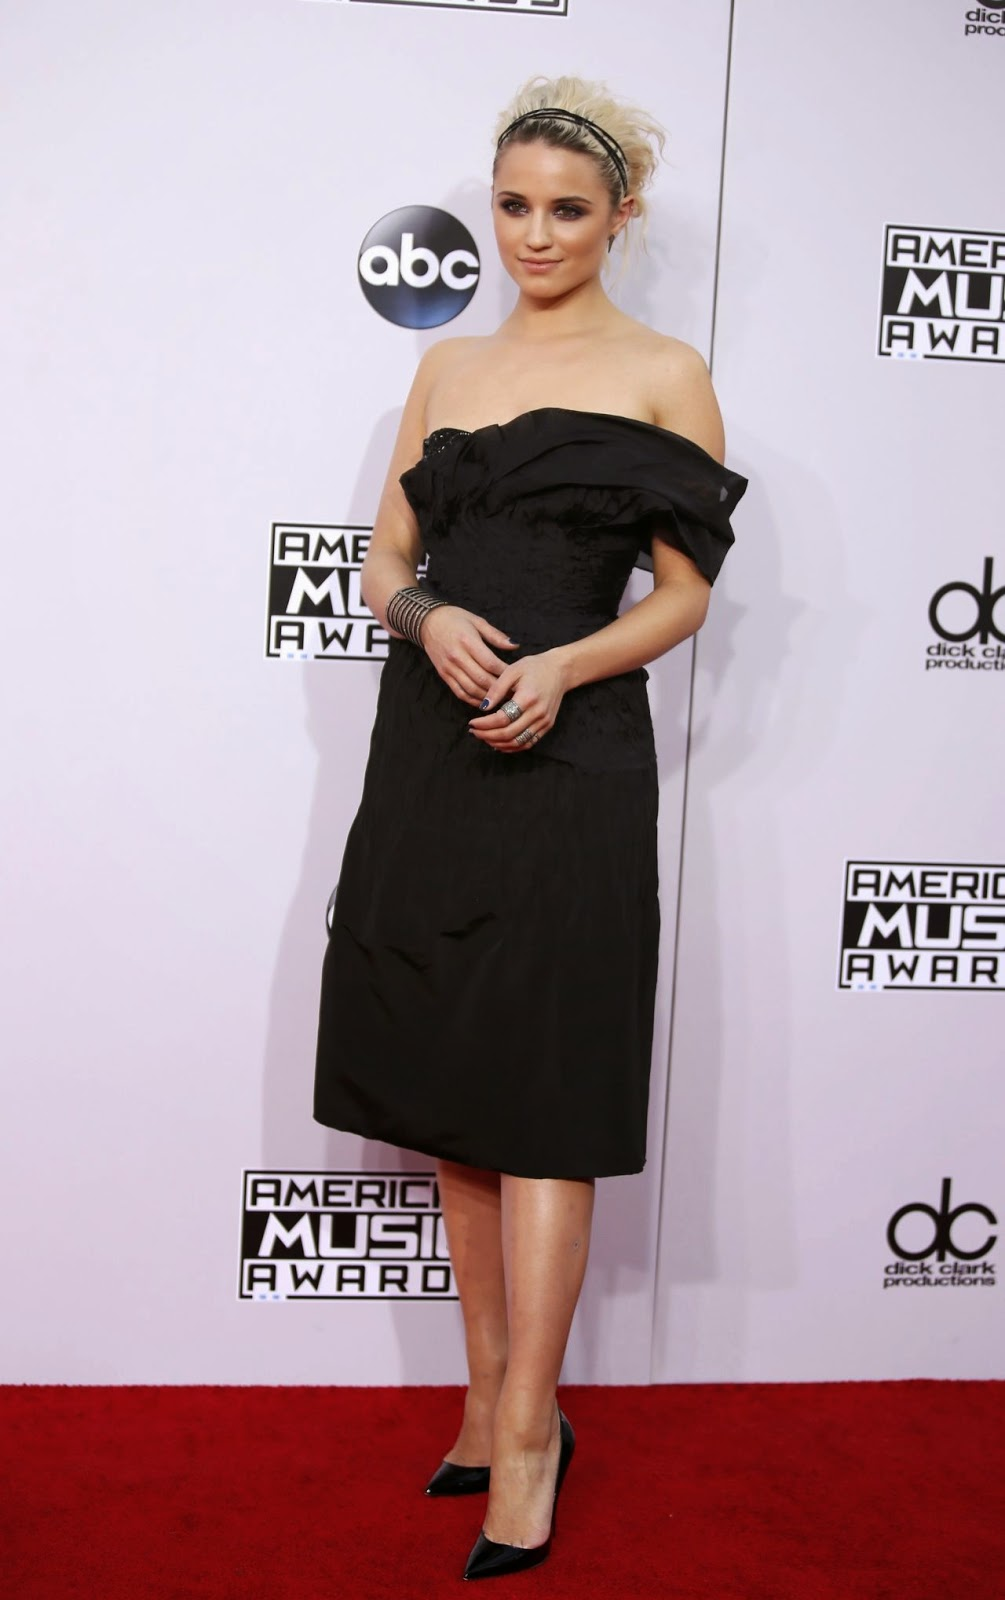 Dianna Agron in an off shoulder Marchesa dress at the 2014 American Music Awards